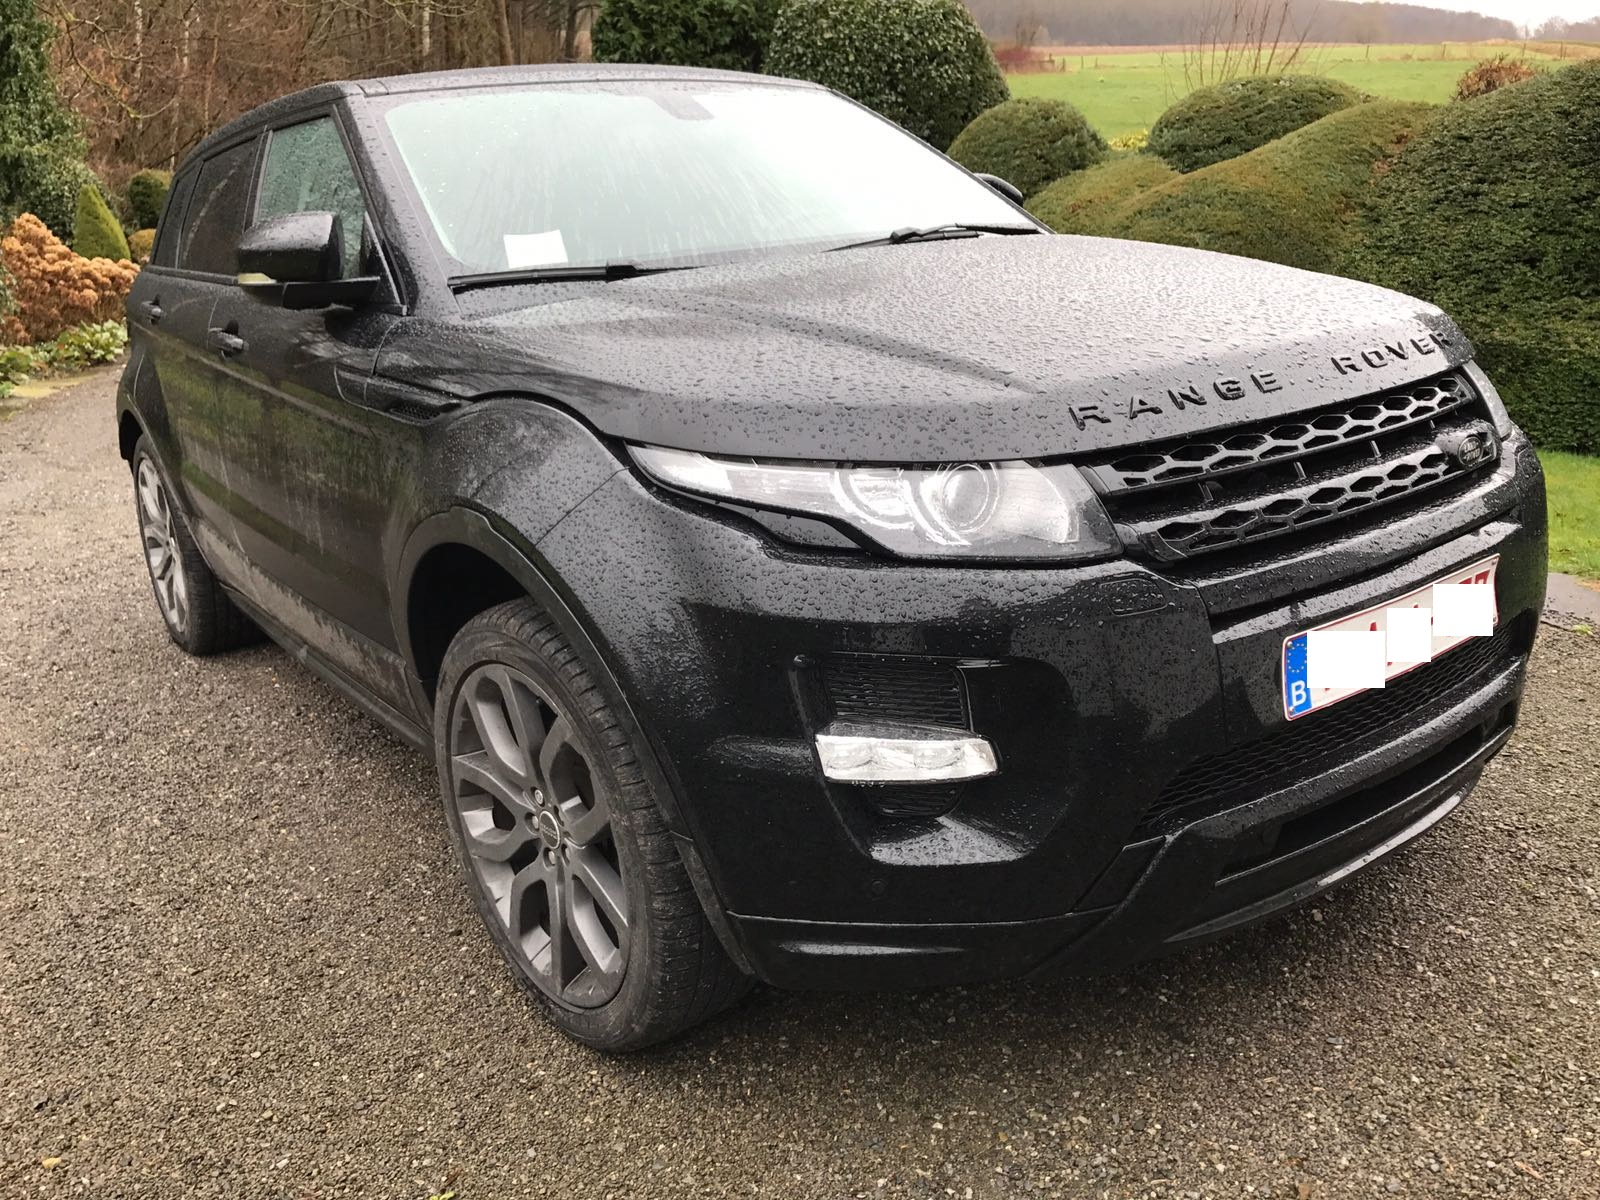 voiture land rover range rover evoque sd4 bva dynami occasion diesel 2012 68000 km 32990. Black Bedroom Furniture Sets. Home Design Ideas